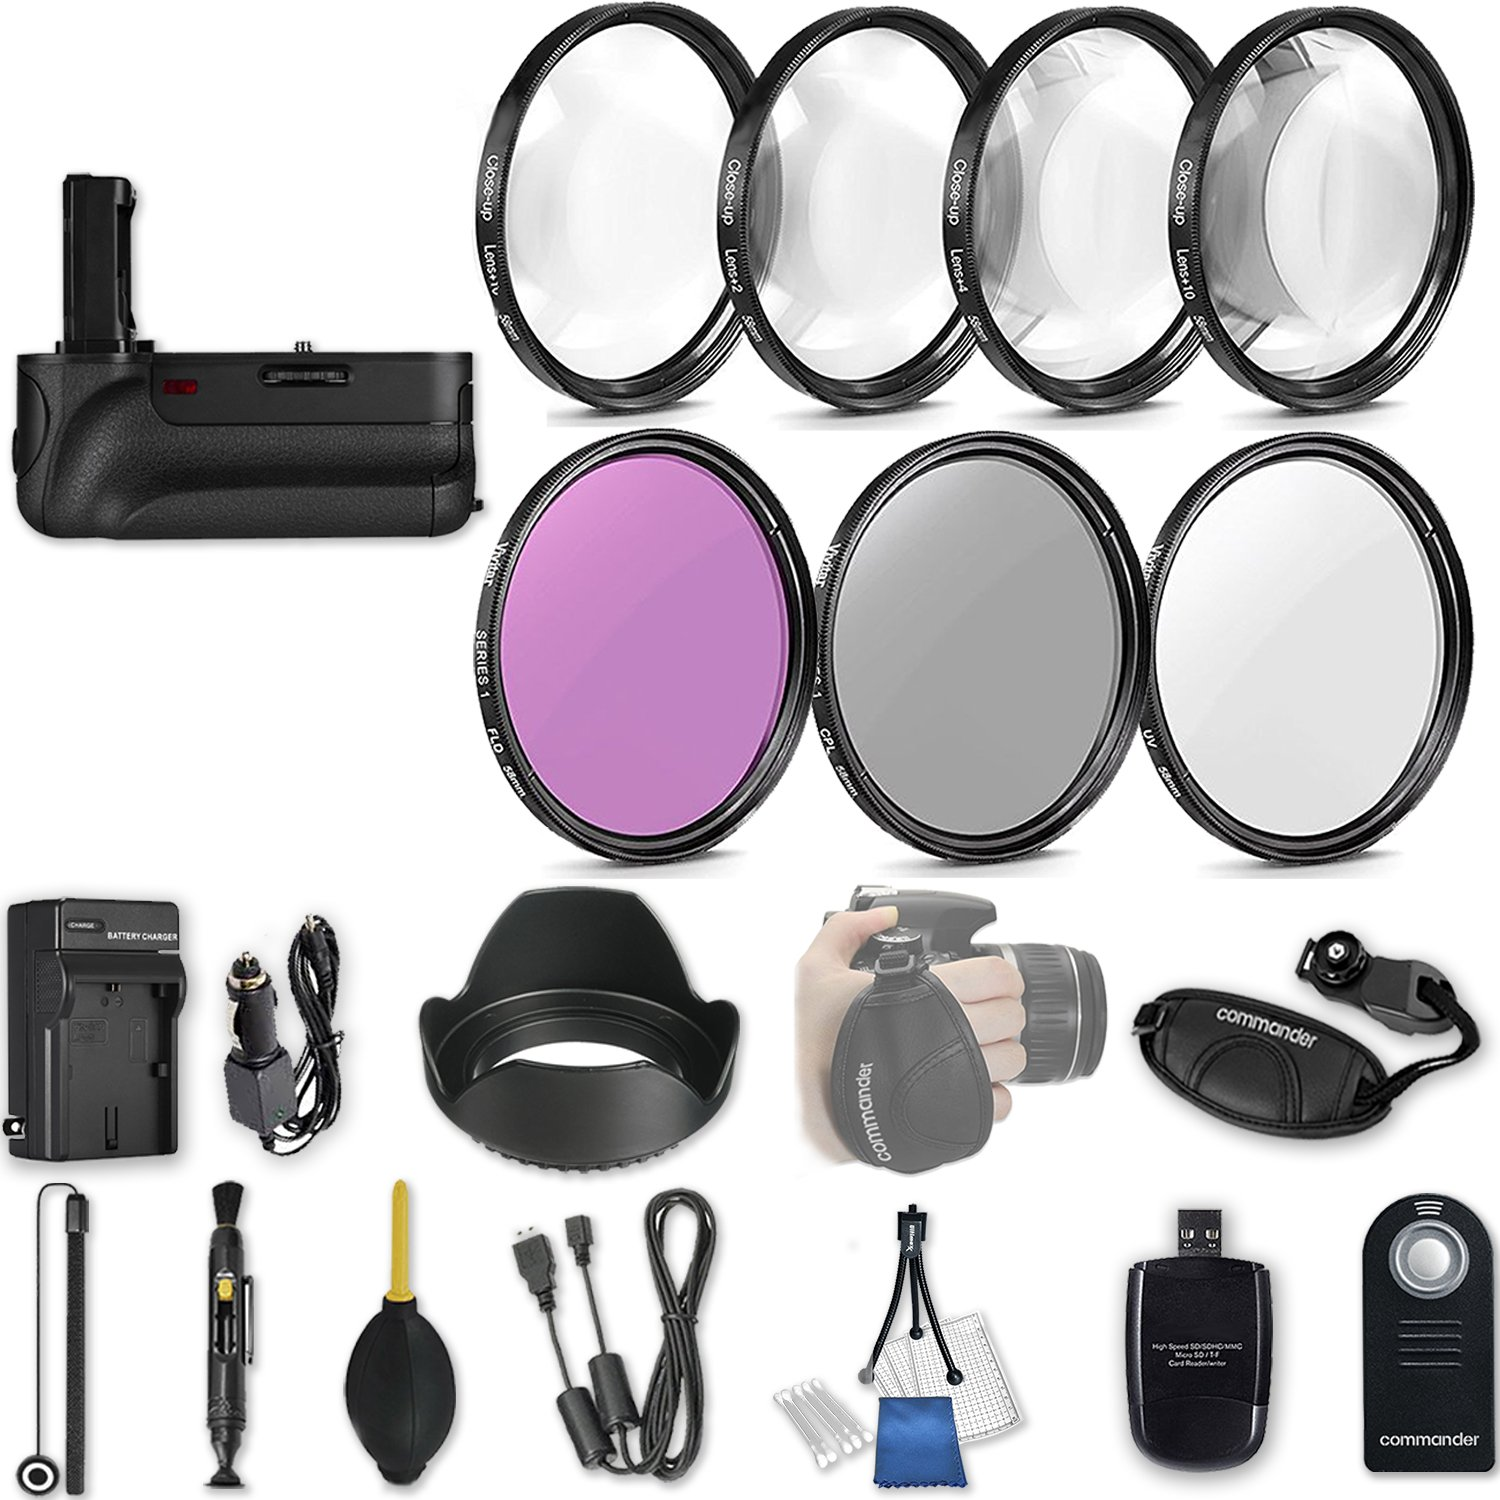 58mm 21 Pc Accessory Kit for Canon EOS T6i, T7i, 77D, T6s, 750D, 800D, 760D DSLRs with Battery Grip, UV CPL FLD Filters, & 4 Piece Macro Close-Up Set, and More by 33rd Street